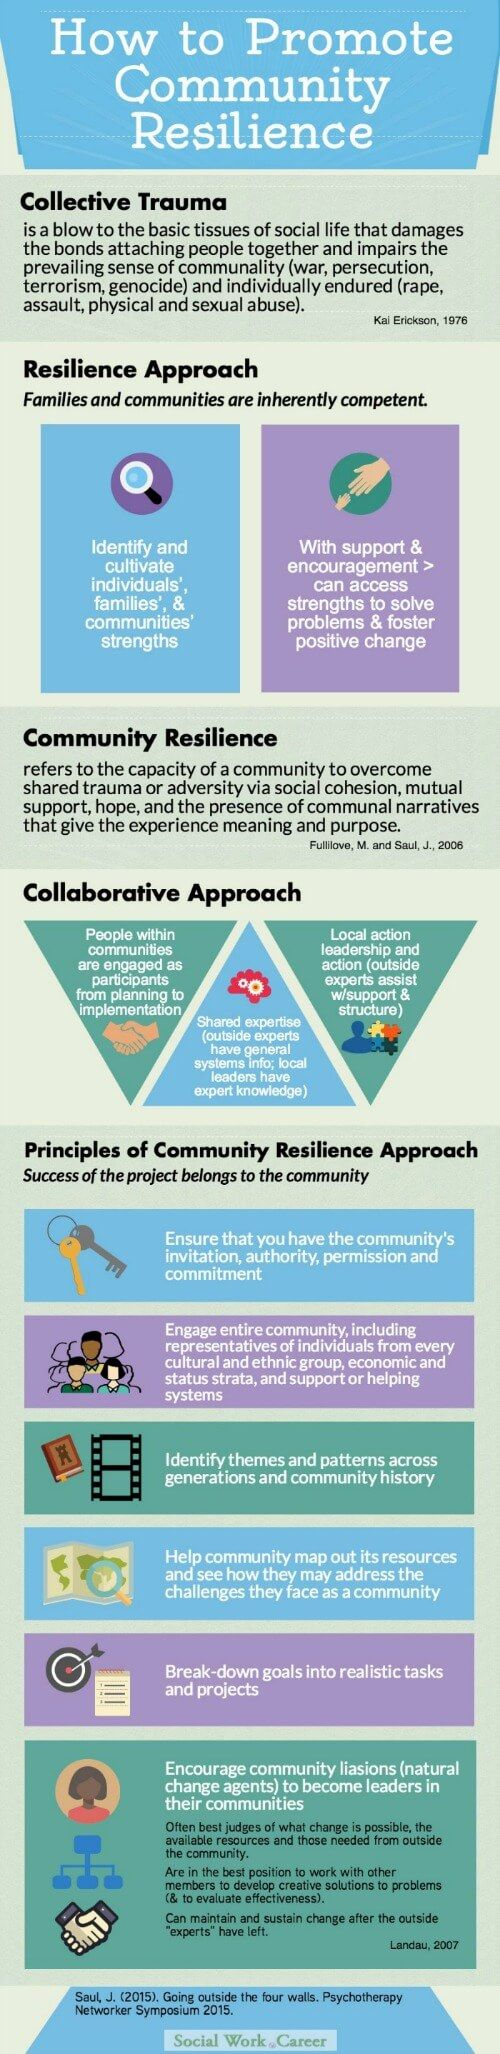 How to Promote Community Resilience Outside Therapy [as response to disaster] < based upon Jack Saul, PhD's presentation at the 2015 Psychotherapy Networker Symposium